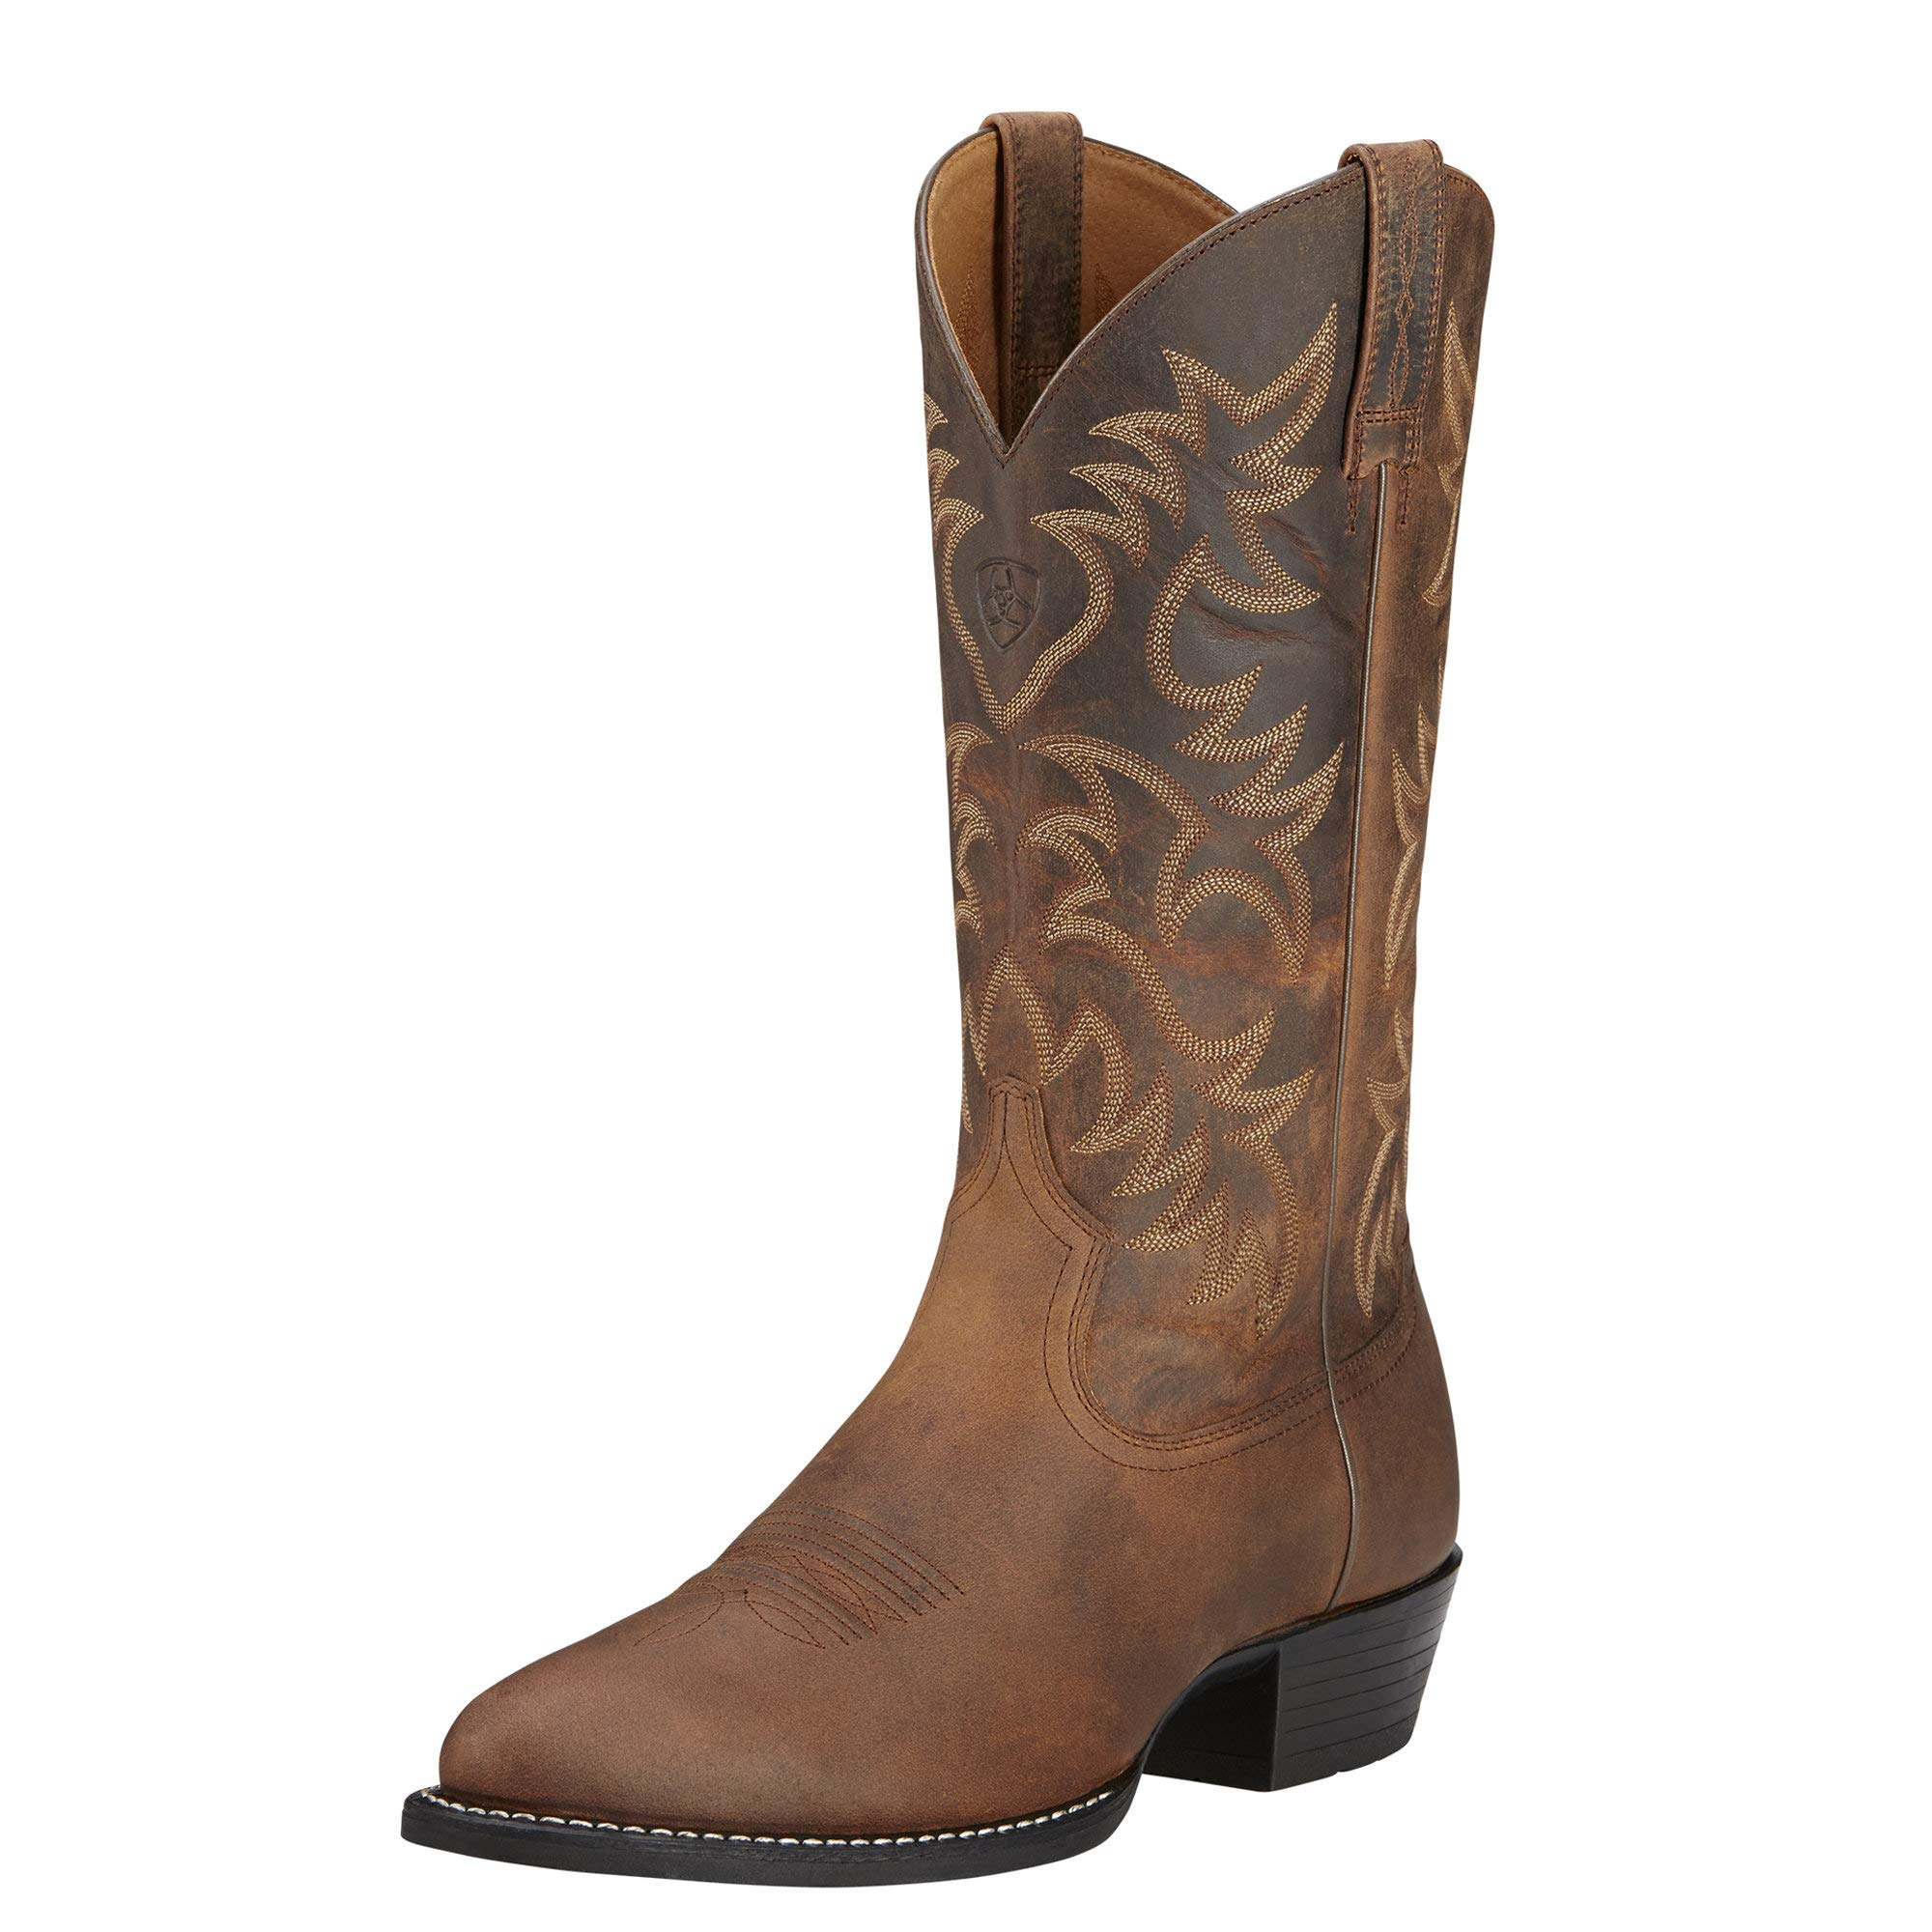 Ariat Men's Heritage Western R Toe Cowboy Boot, Distressed Brown, 13 D US